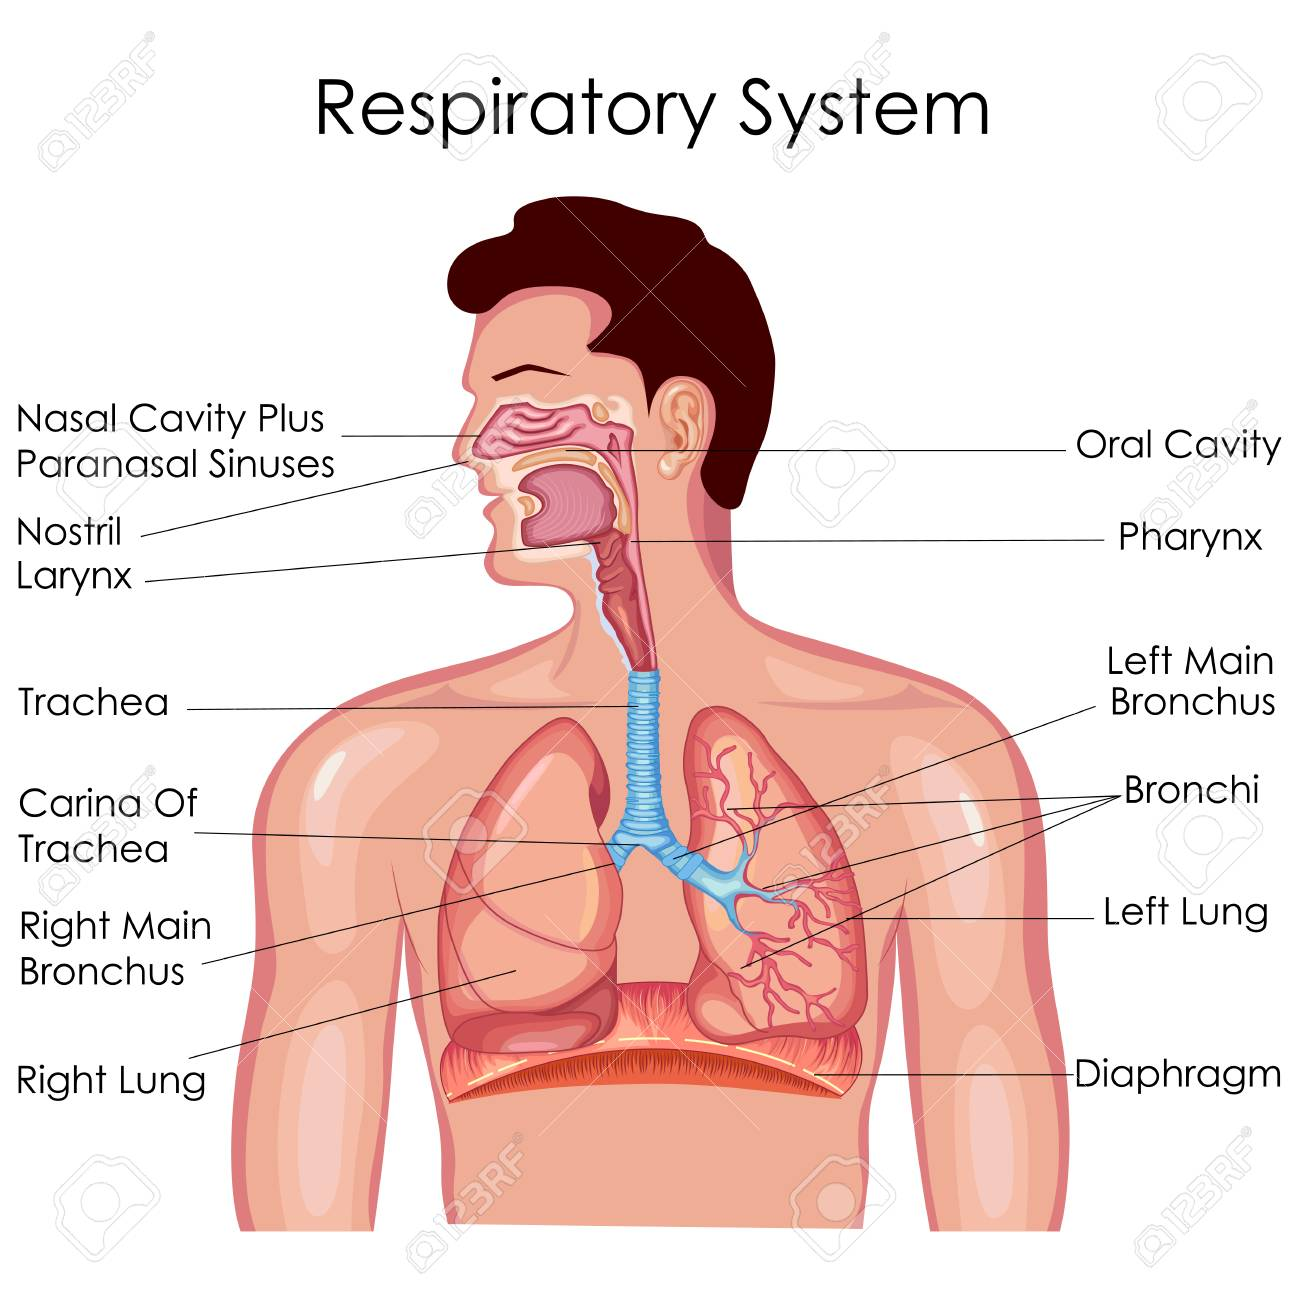 medical education chart of biology for respiratory system diagram  vector  illustration stock vector - 79651318